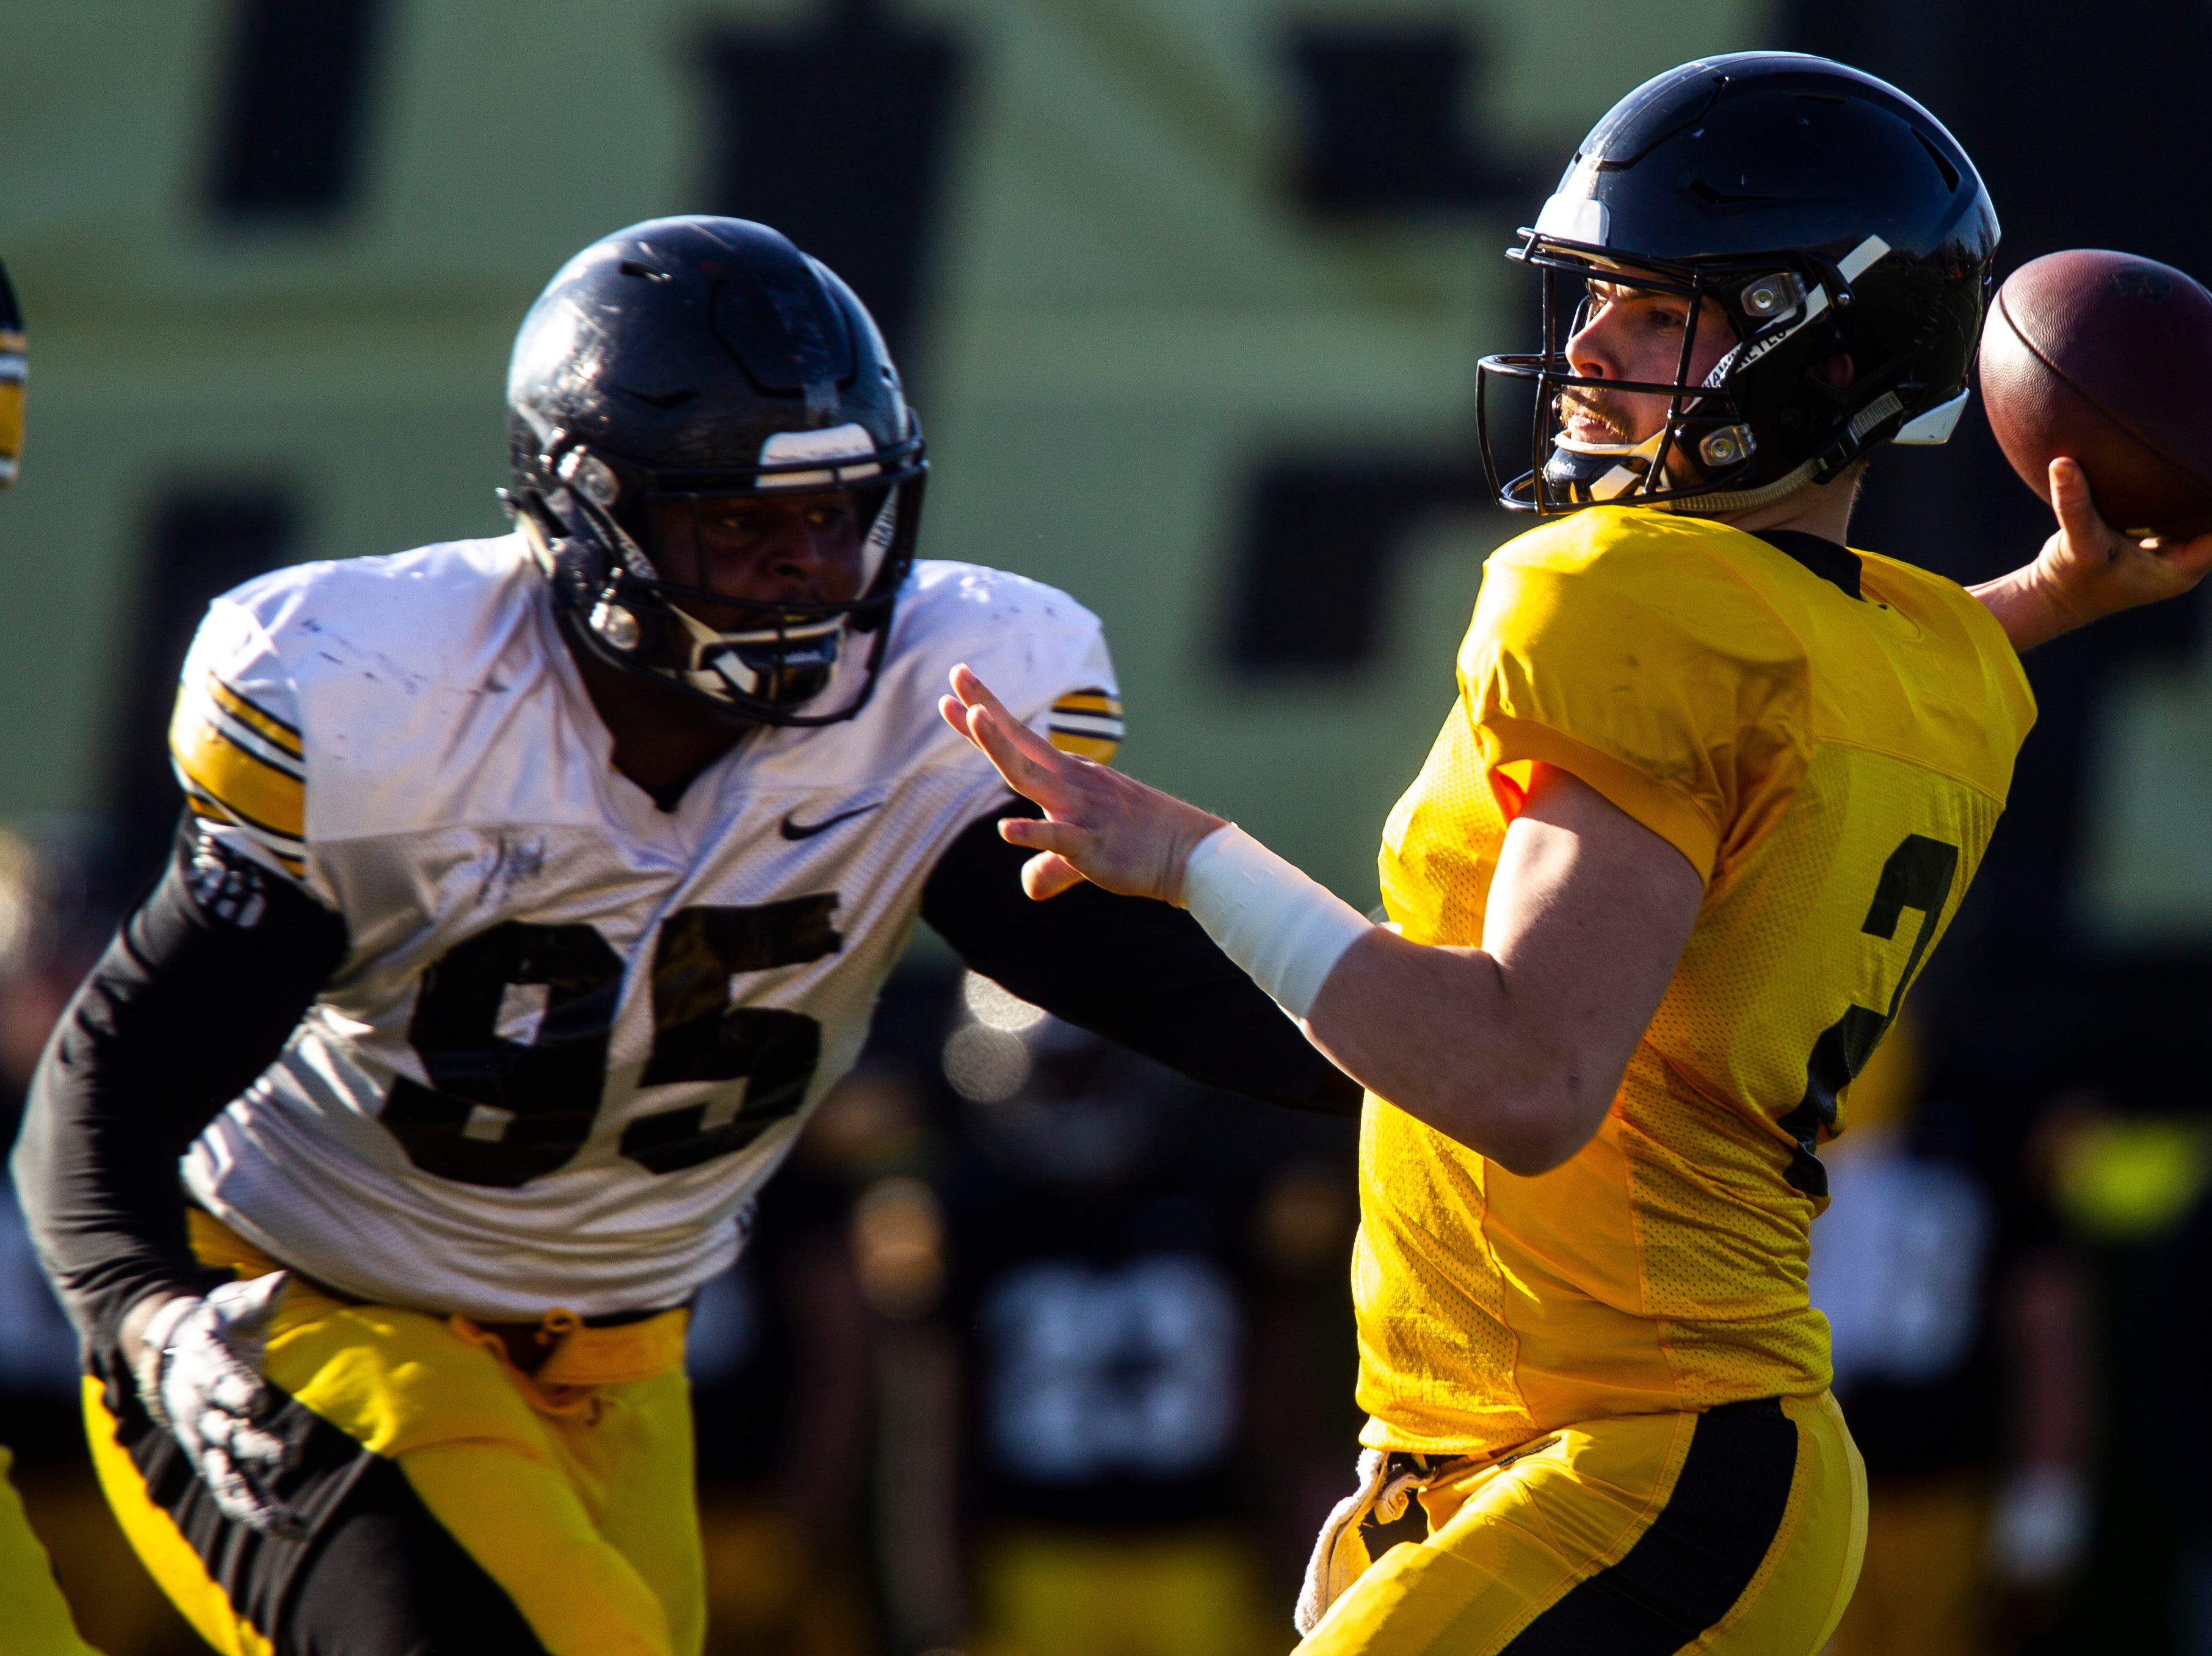 Iowa quarterback Peyton Mansell (2) attempts to get a pass away while defensive lineman Cedrick Lattimore (95) brings pressure during the final spring football practice, Friday, April 26, 2019, at the University of Iowa outdoor practice facility in Iowa City, Iowa.